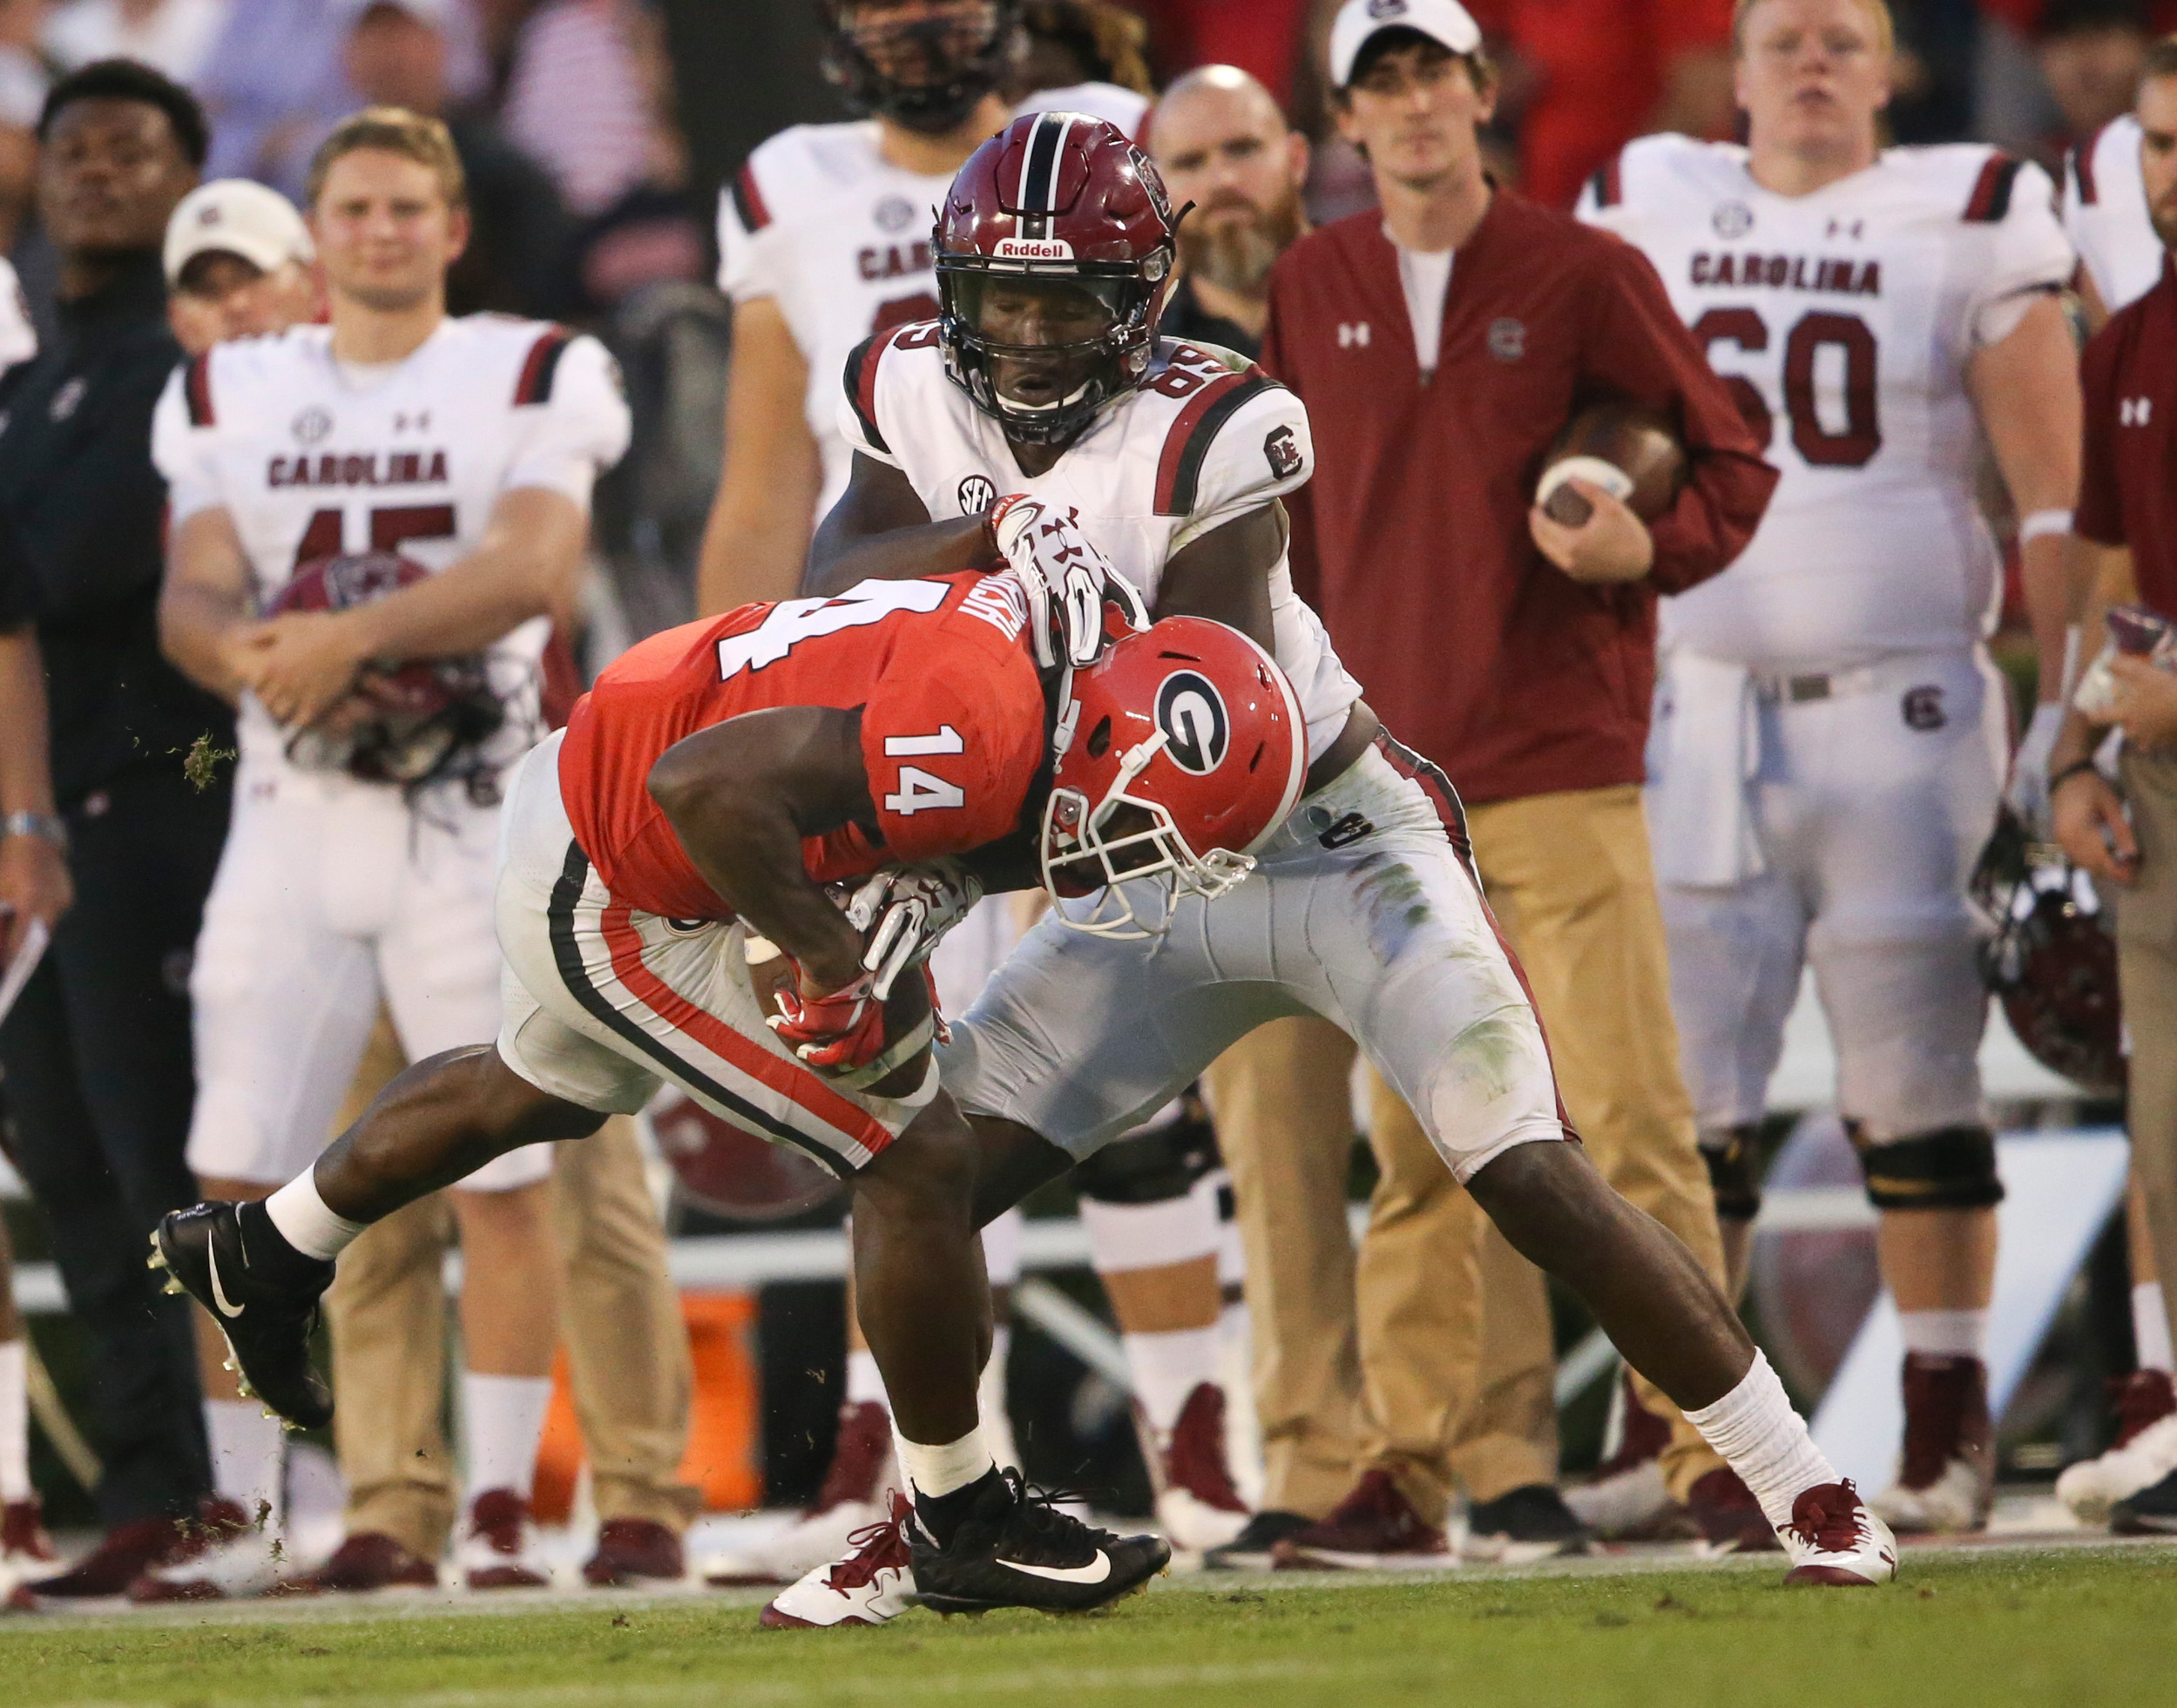 South Carolina's Deebo Samuel ruled out for season after setback